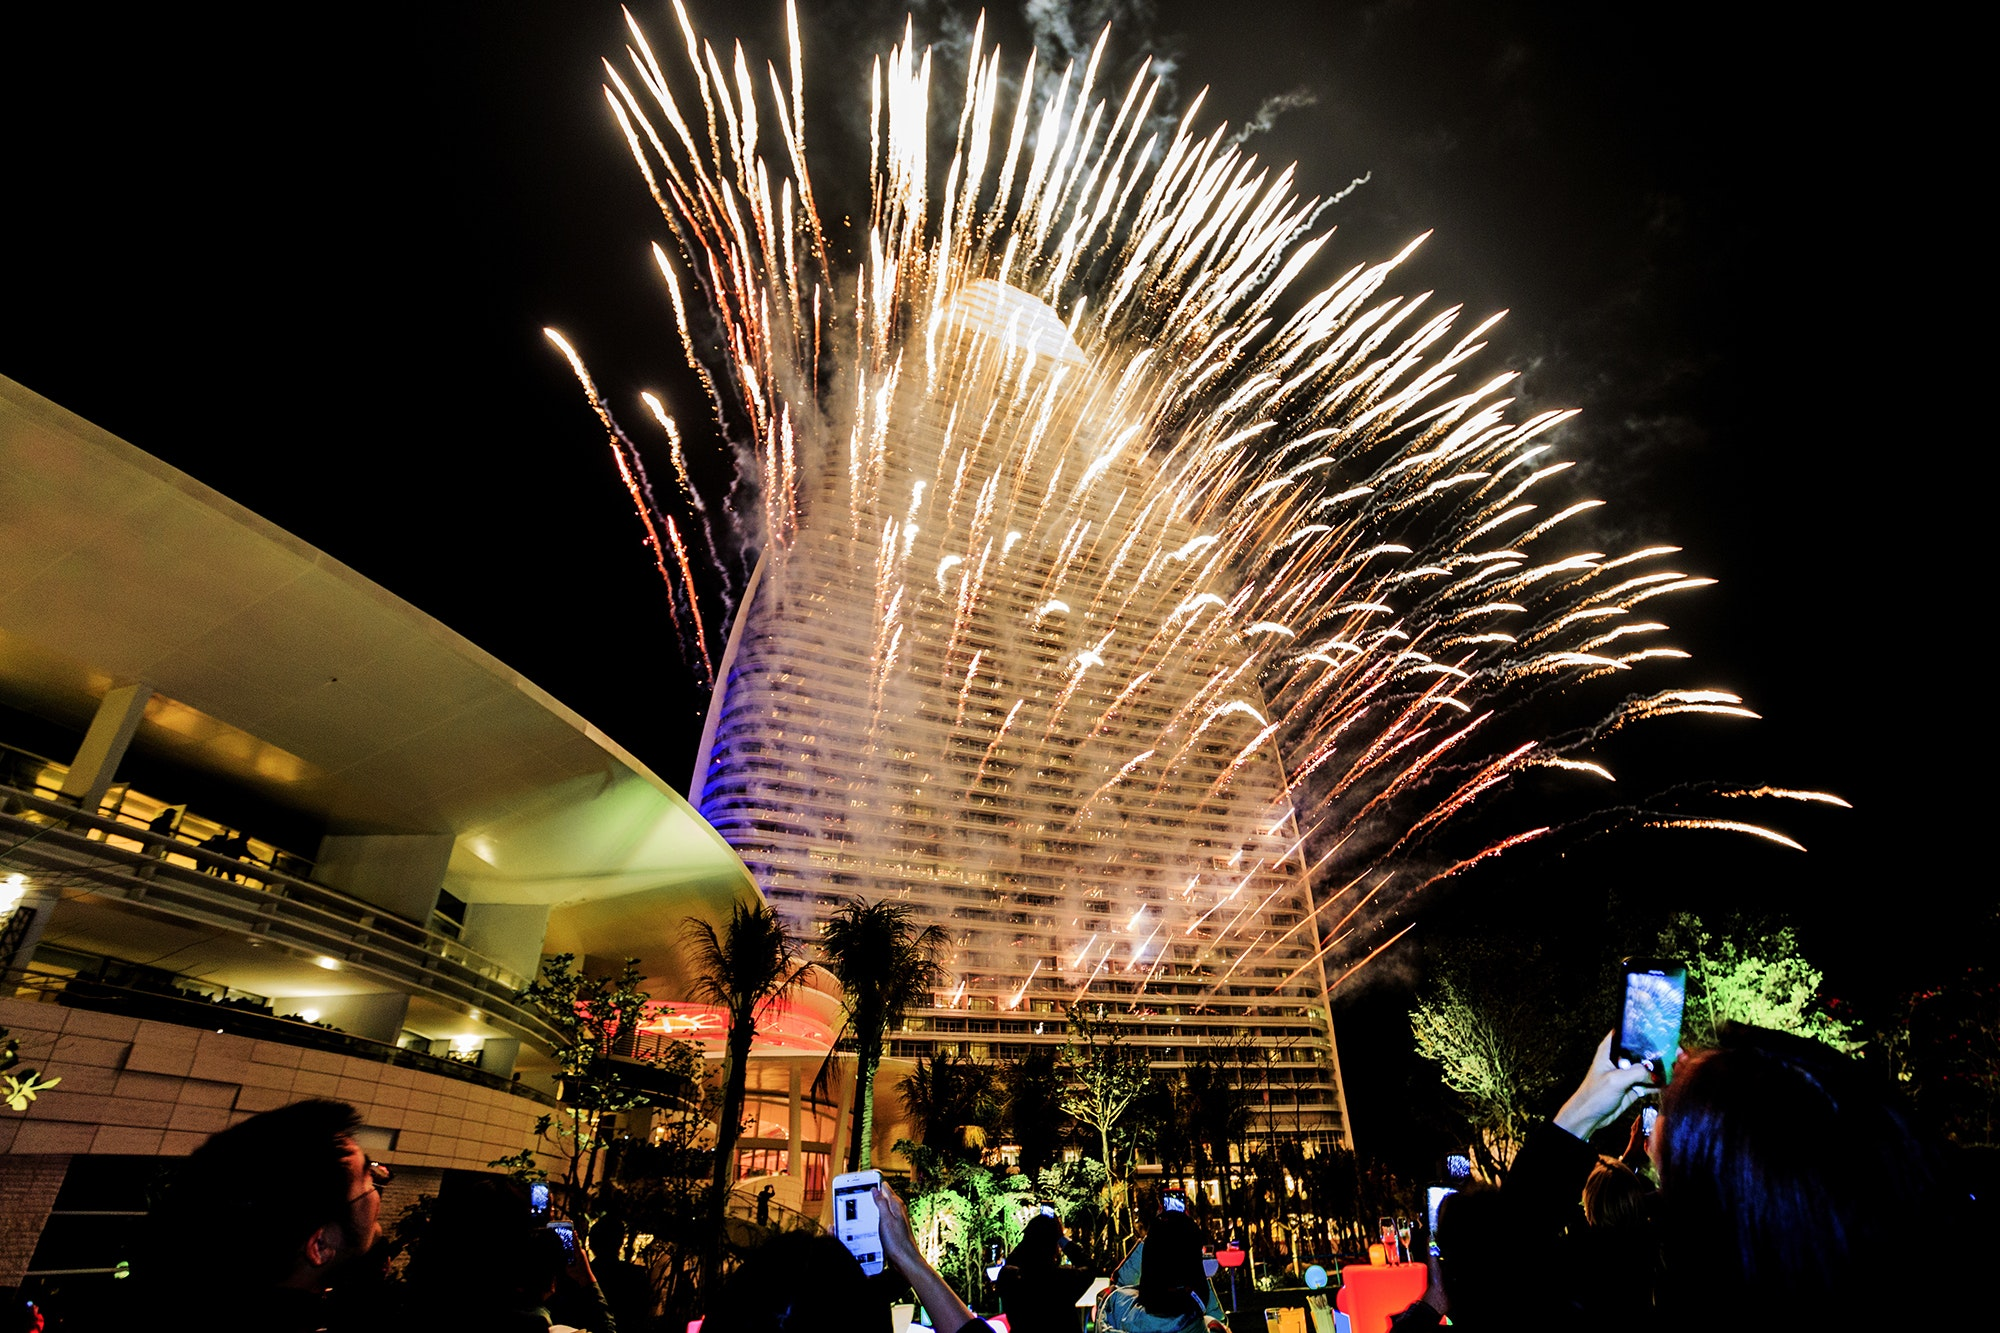 Atlantis Sanya celebrated its grand opening (and Chinese New Year) with a suitably unsubtle fireworks display.